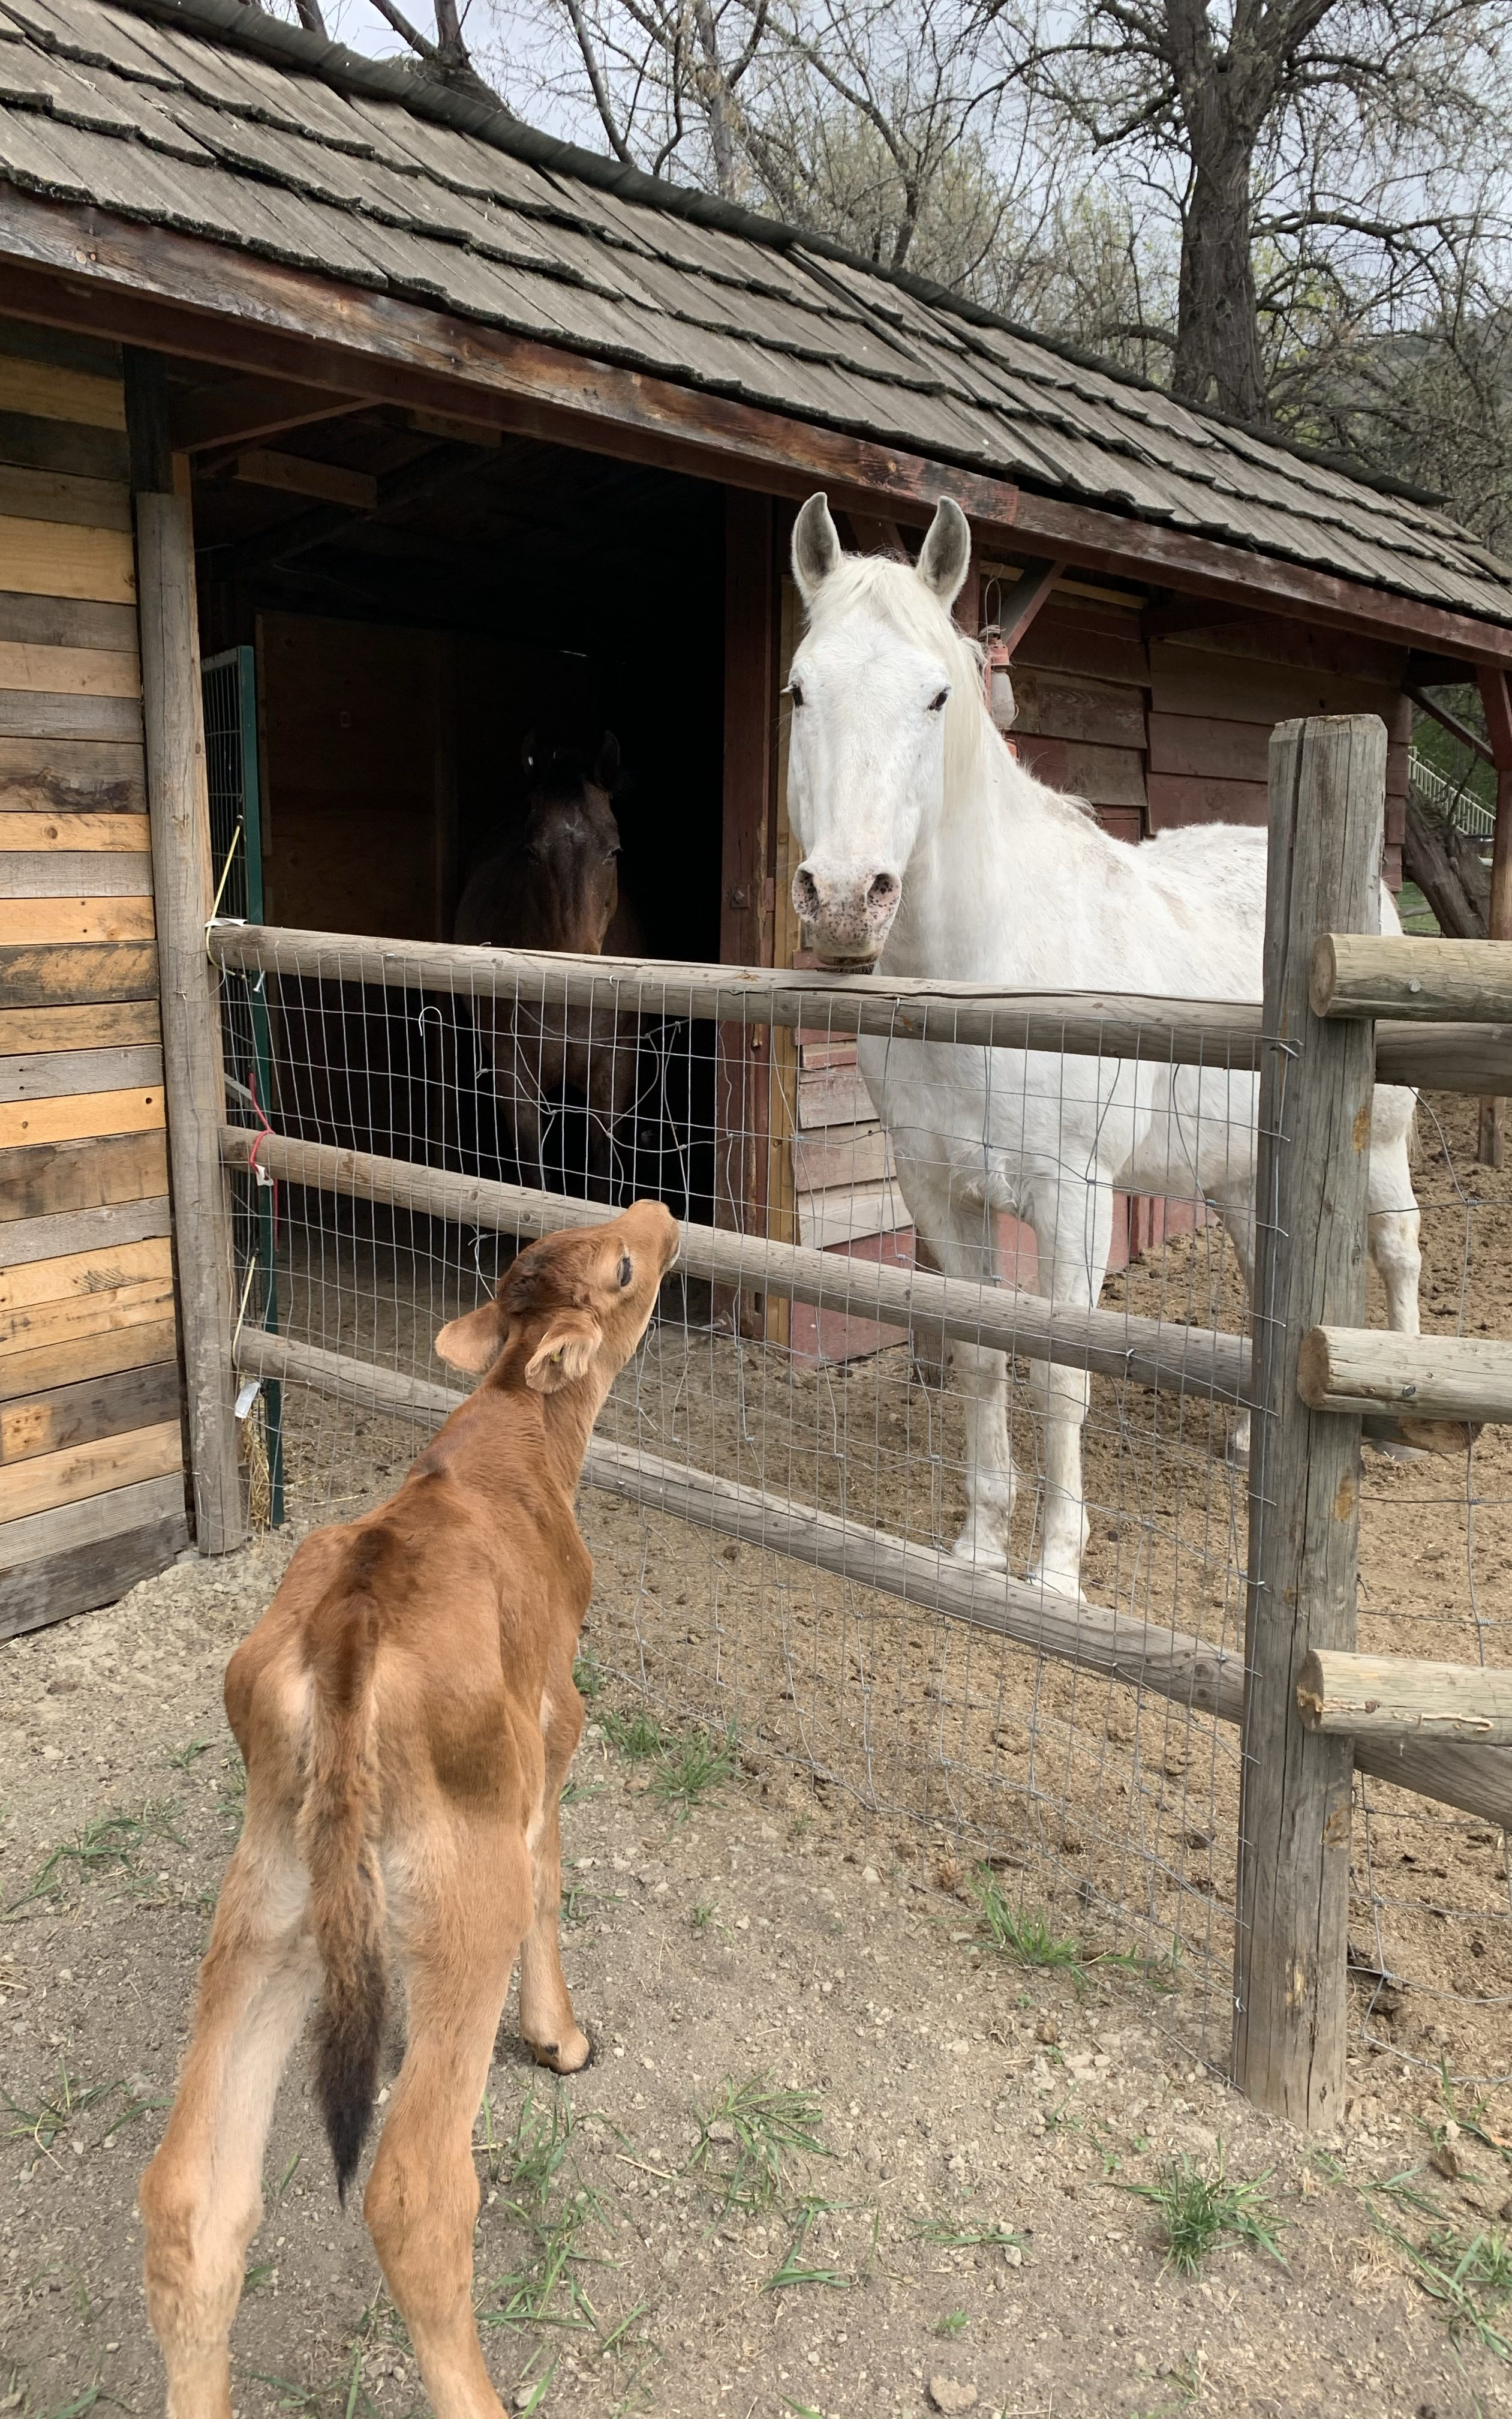 Small calf and white horse standing in front of each other between a wooden fence